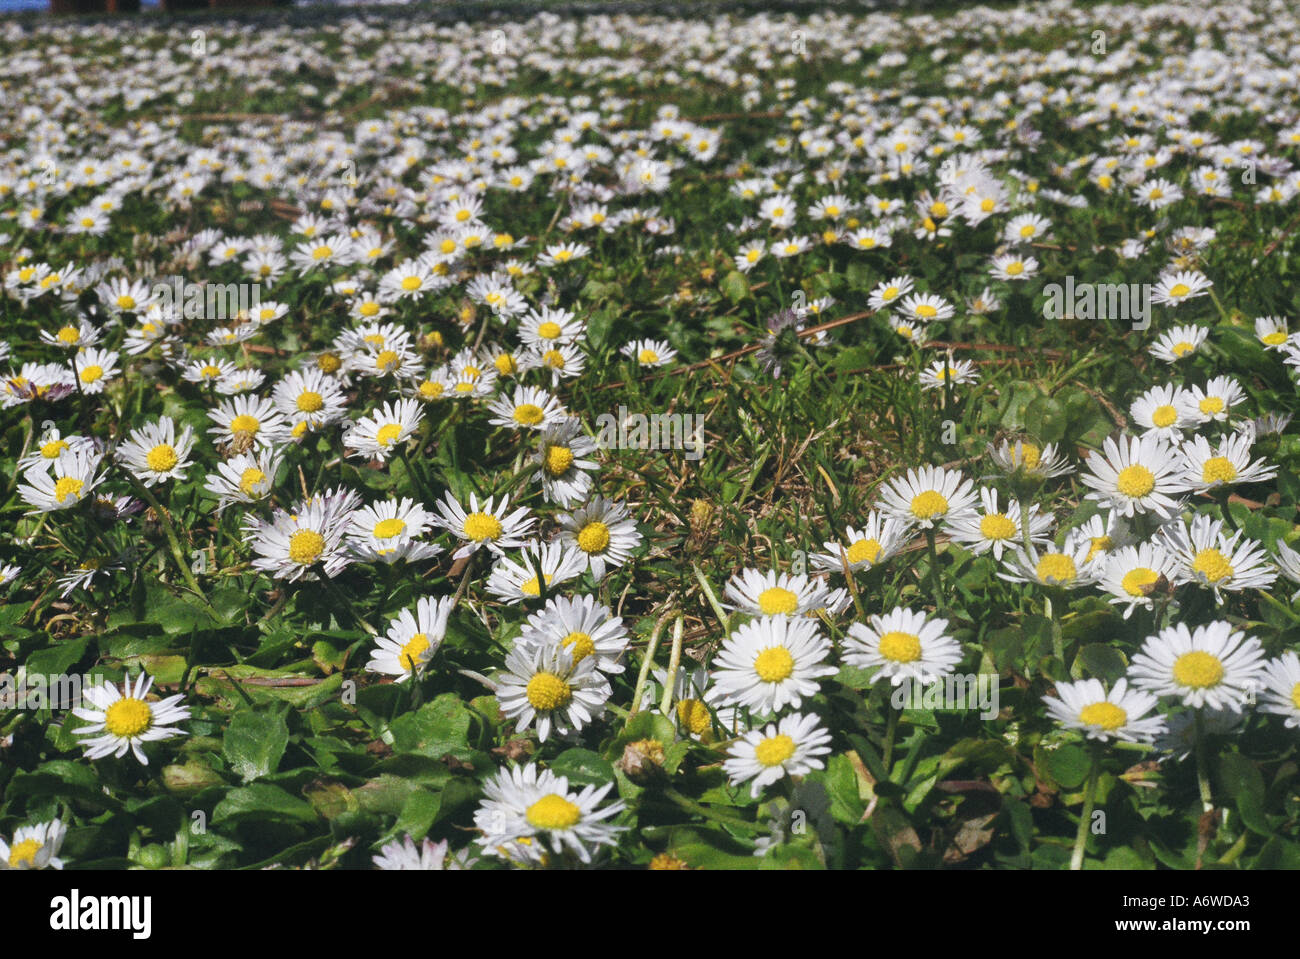 Tiny white flowers and grass close up stock photo royalty free stock photo tiny white flowers and grass close up dhlflorist Image collections